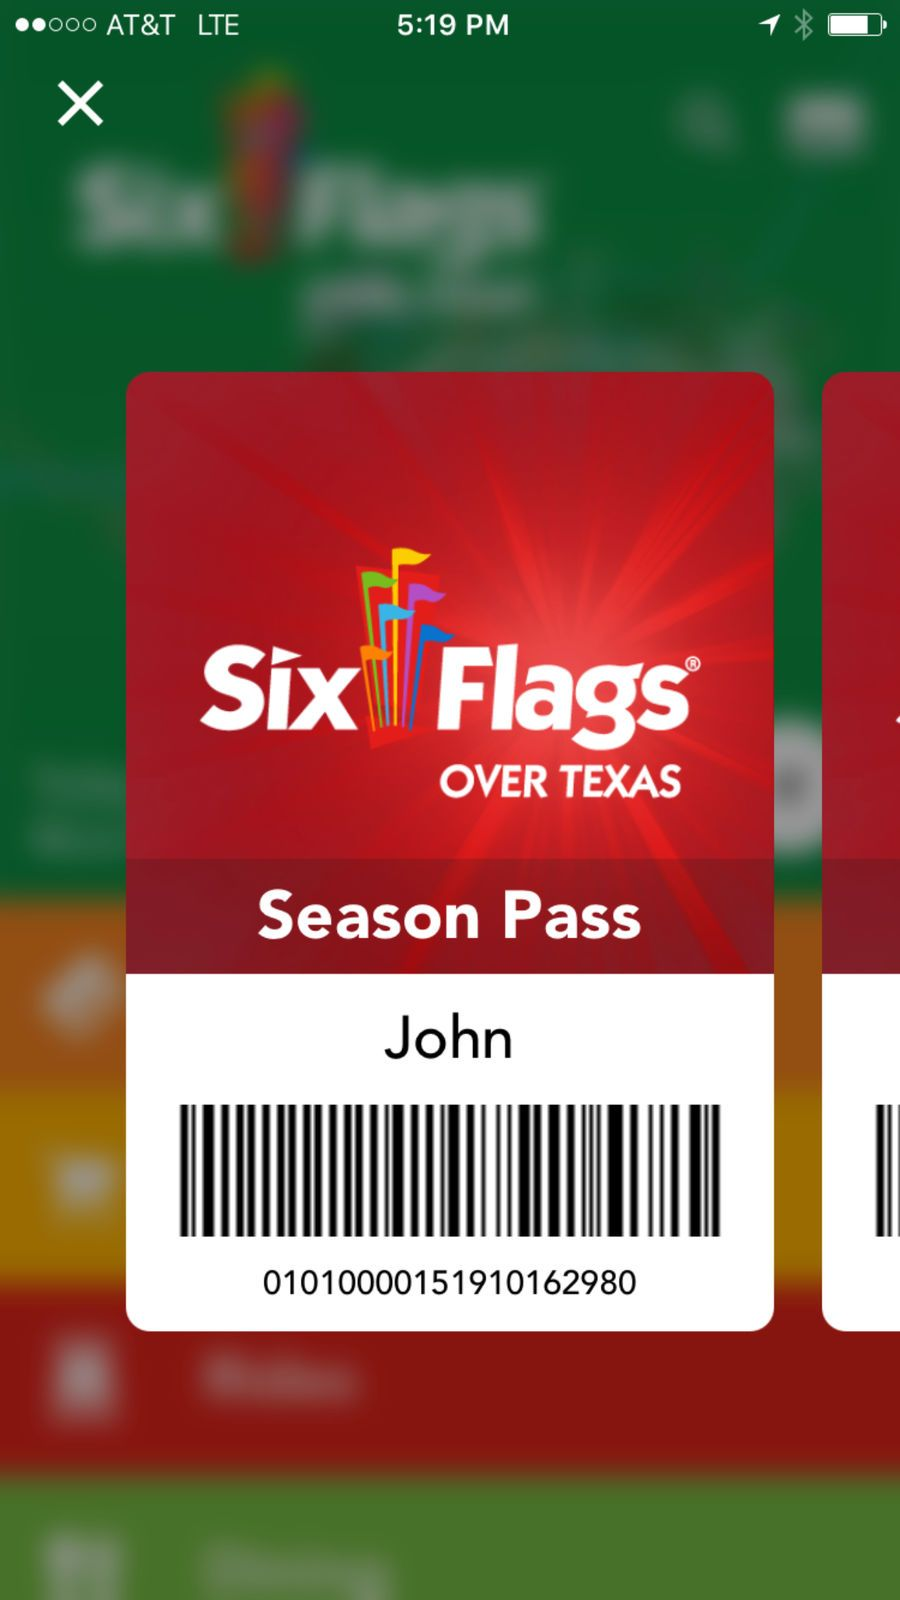 2015 Save 20 Or More On Six Flags Great America Tickets At Jewel Osco In Chicago And Gurnee Sixflags Greatamerica Chicago Great America America Six Flags